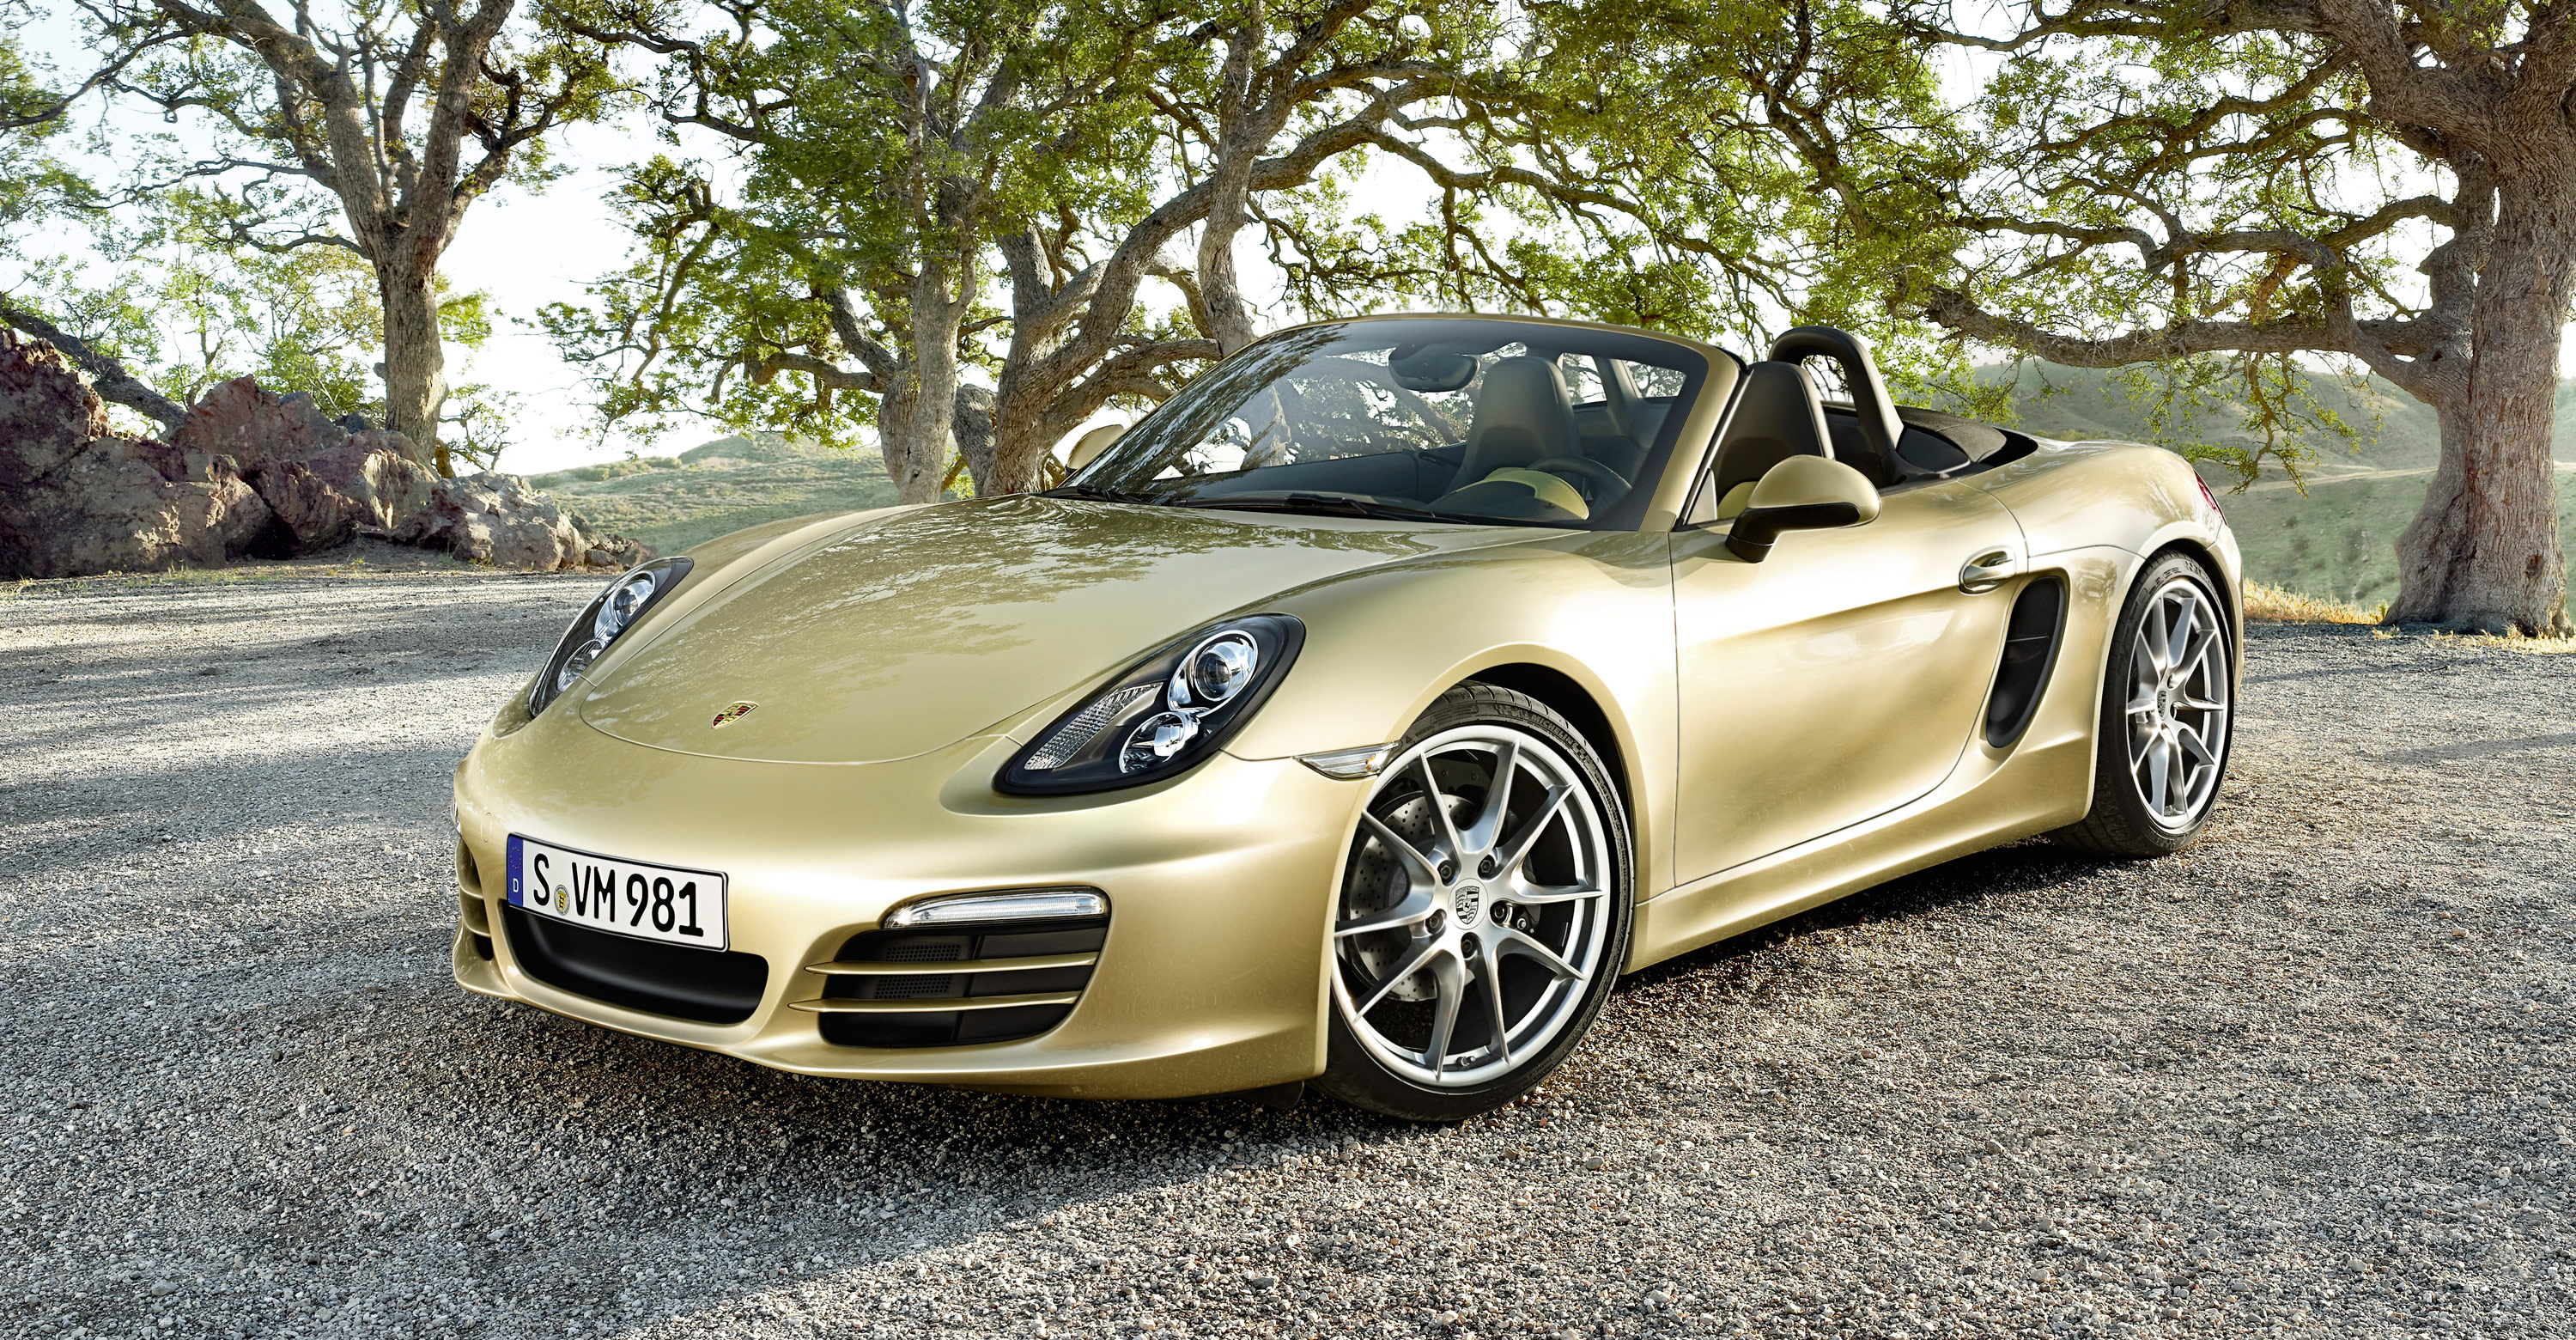 2012 Porsche Boxster - Front angle side view